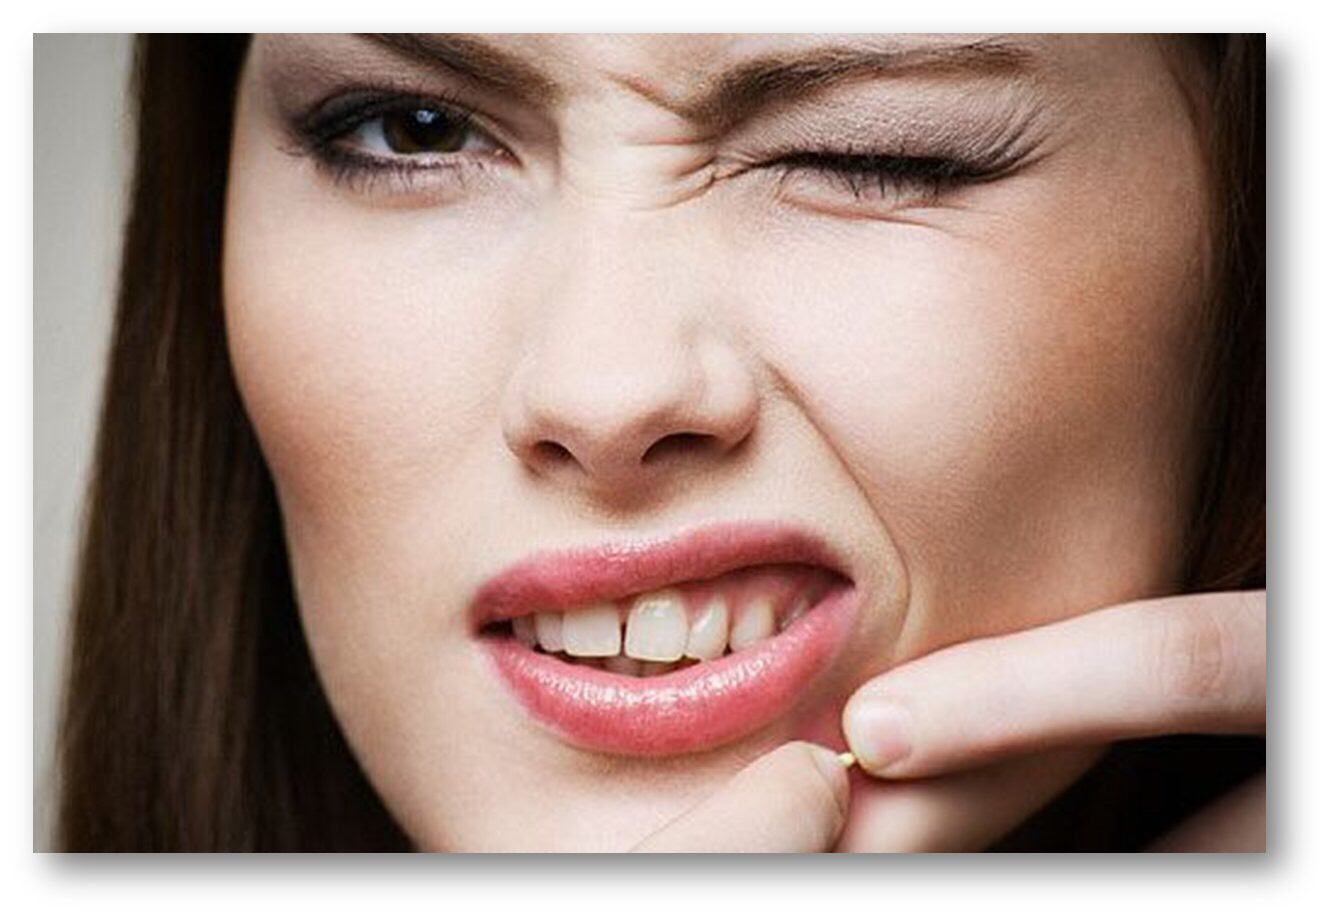 How to get rid of acne. DO NOT SQUEEZE THE PIMPLE EVEN IF ITS WHITE. THE GERMS WILL SPREAD OUT AND CREATE MORE PIMPLES